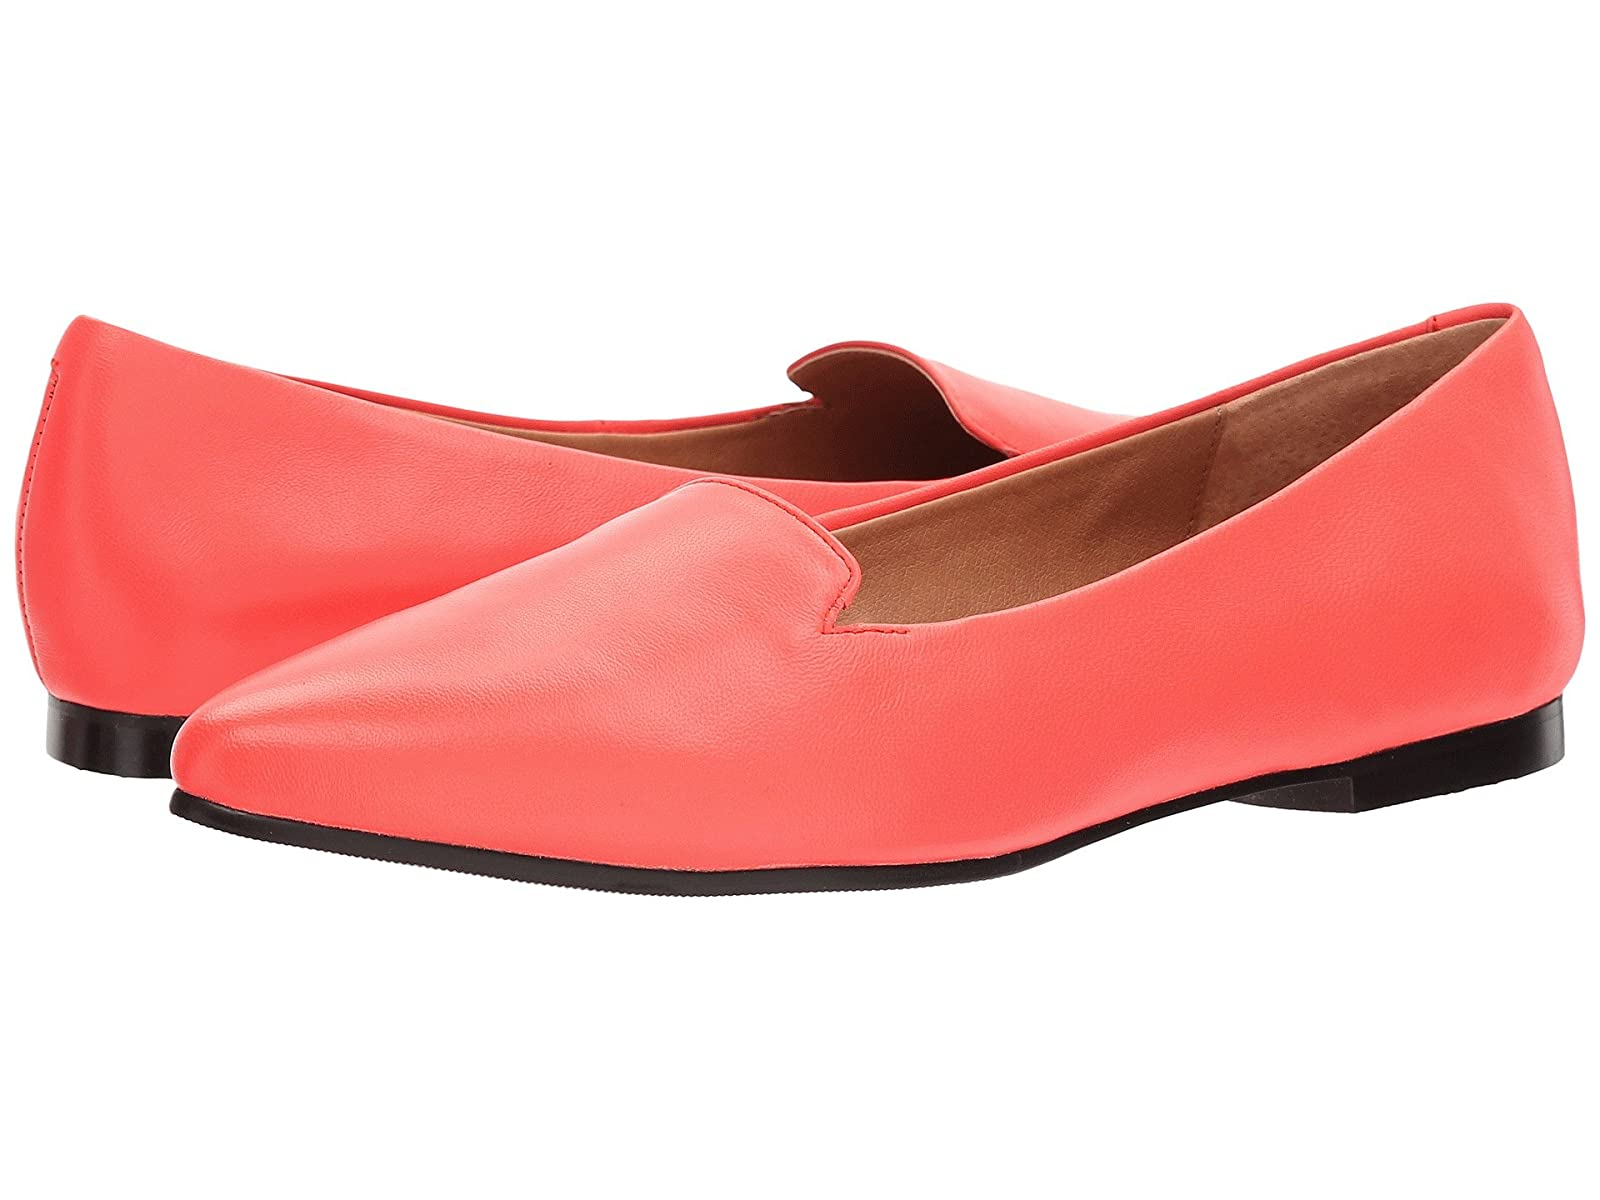 Trotters HarloweCheap and distinctive eye-catching shoes